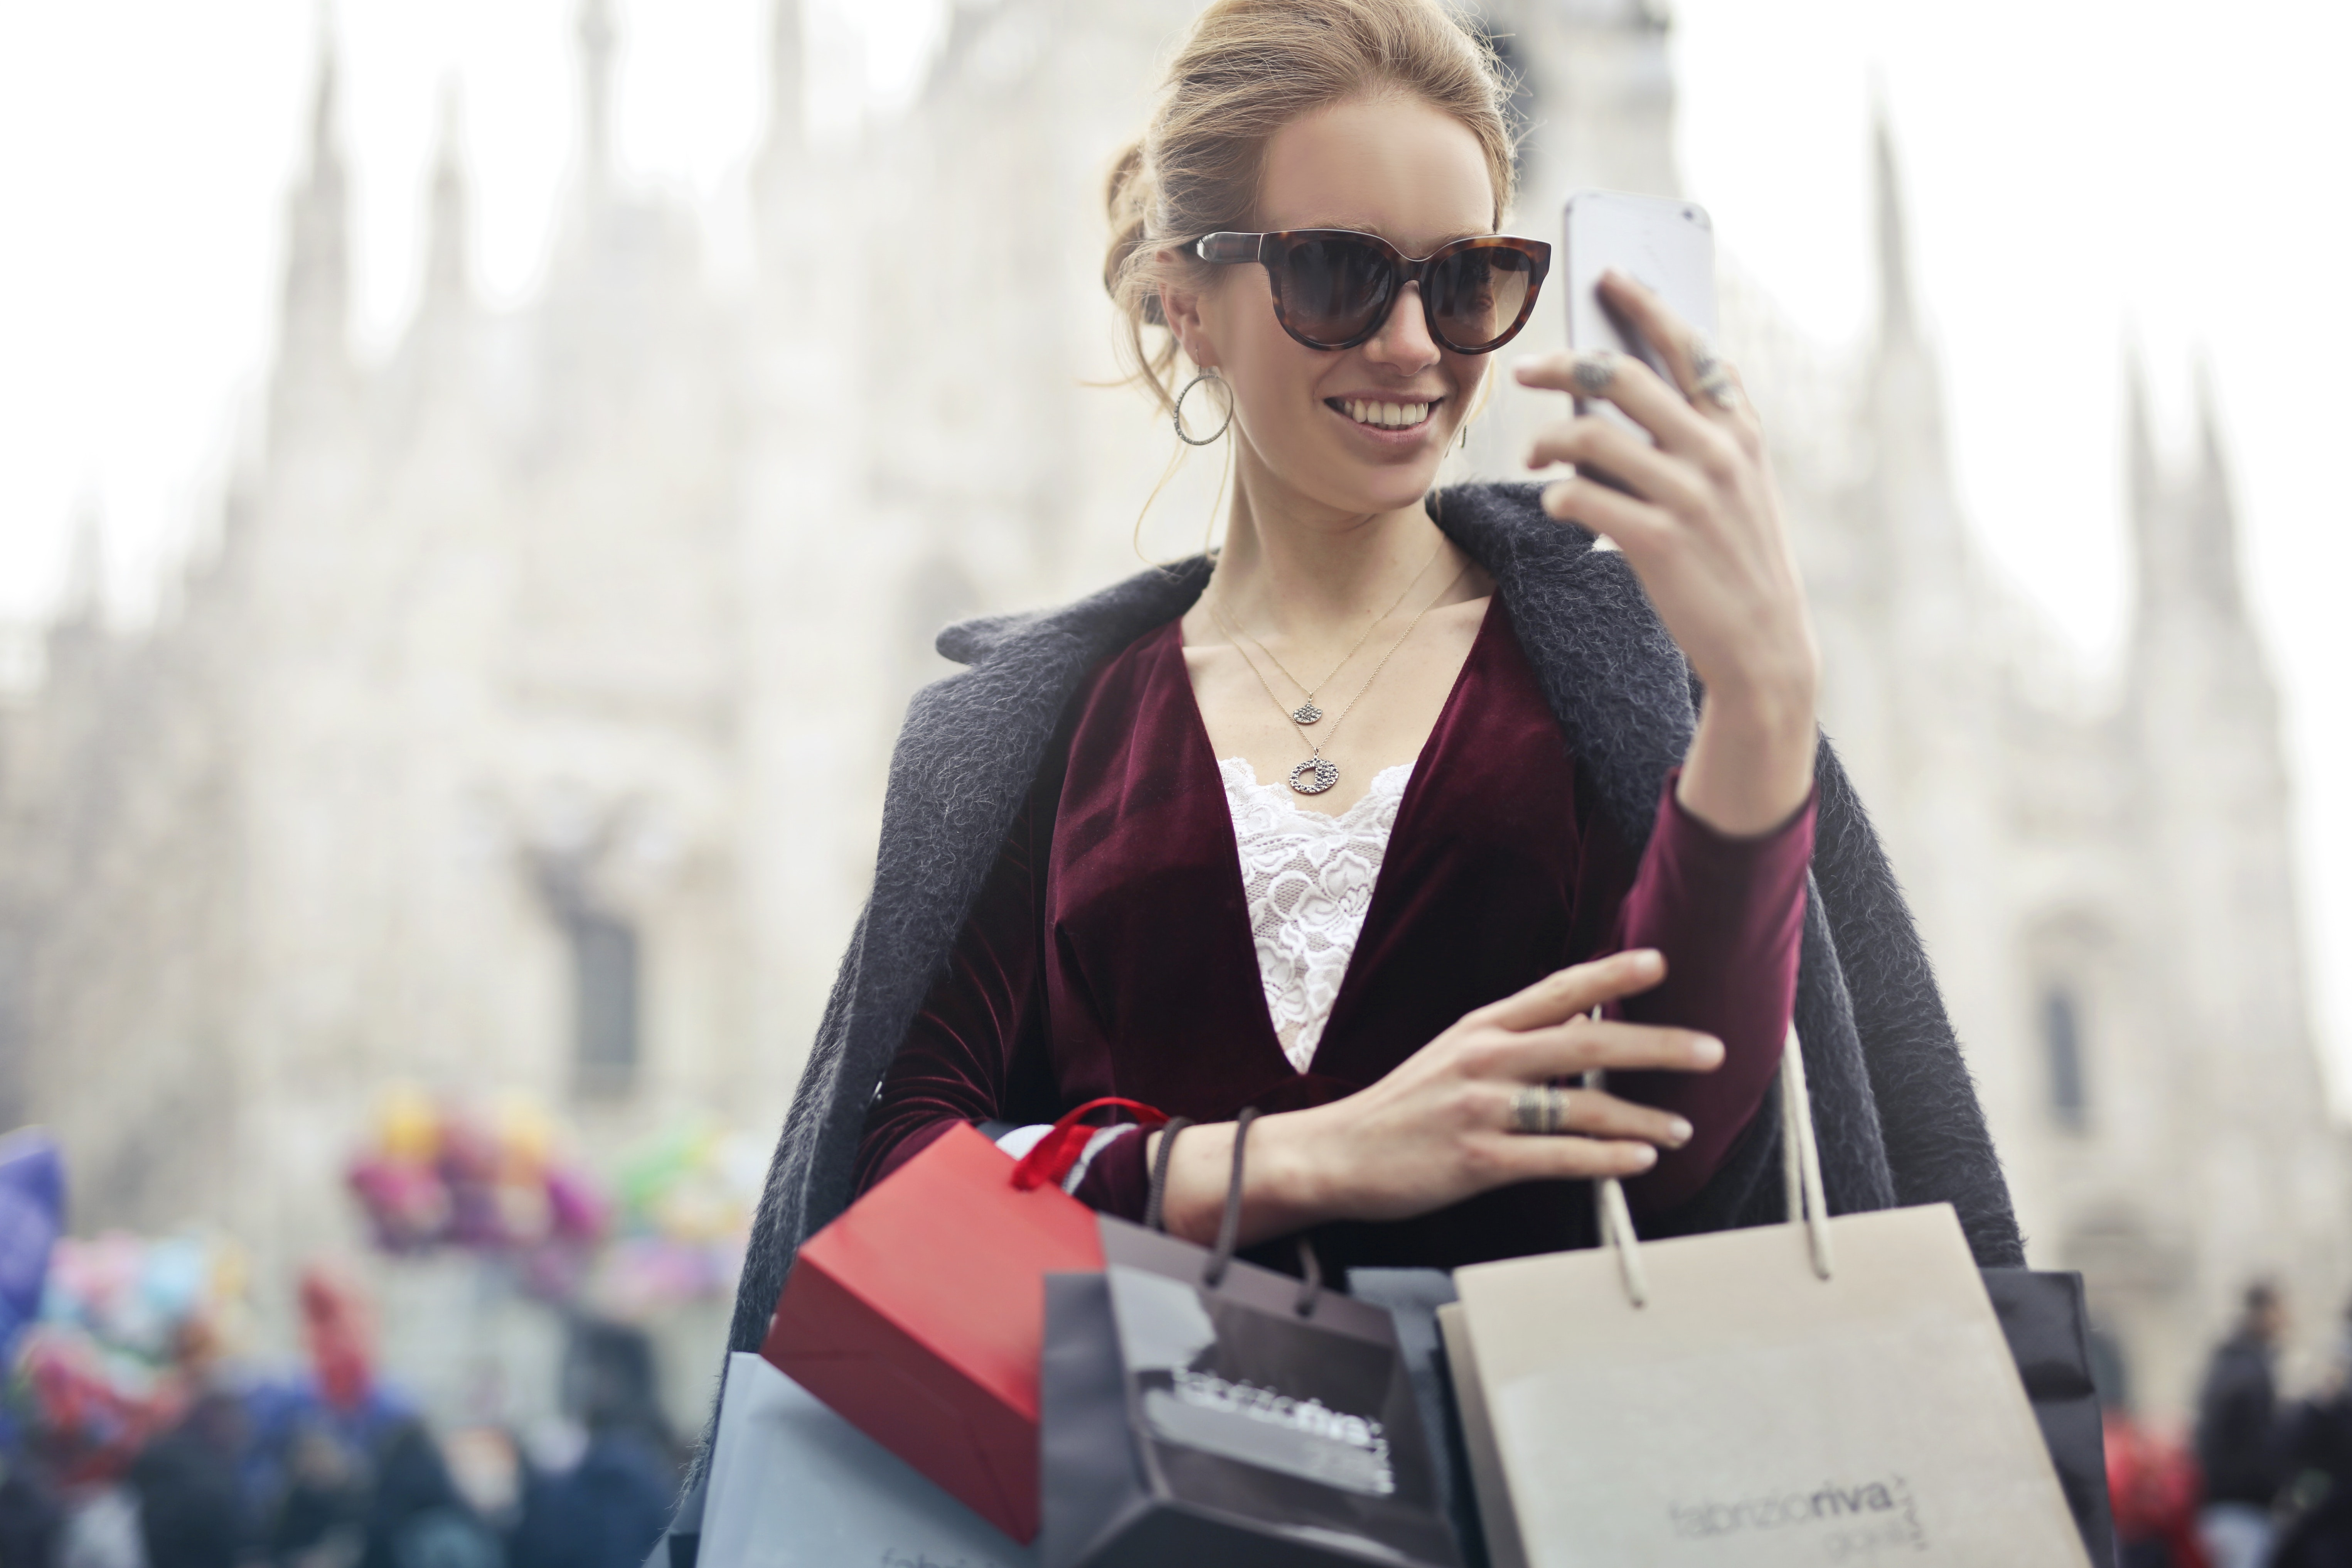 Woman in Maroon Long-sleeved Top Holding Smartphone With Shopping Bags at Daytime, Adult, Photo, Wear, Technology, HQ Photo